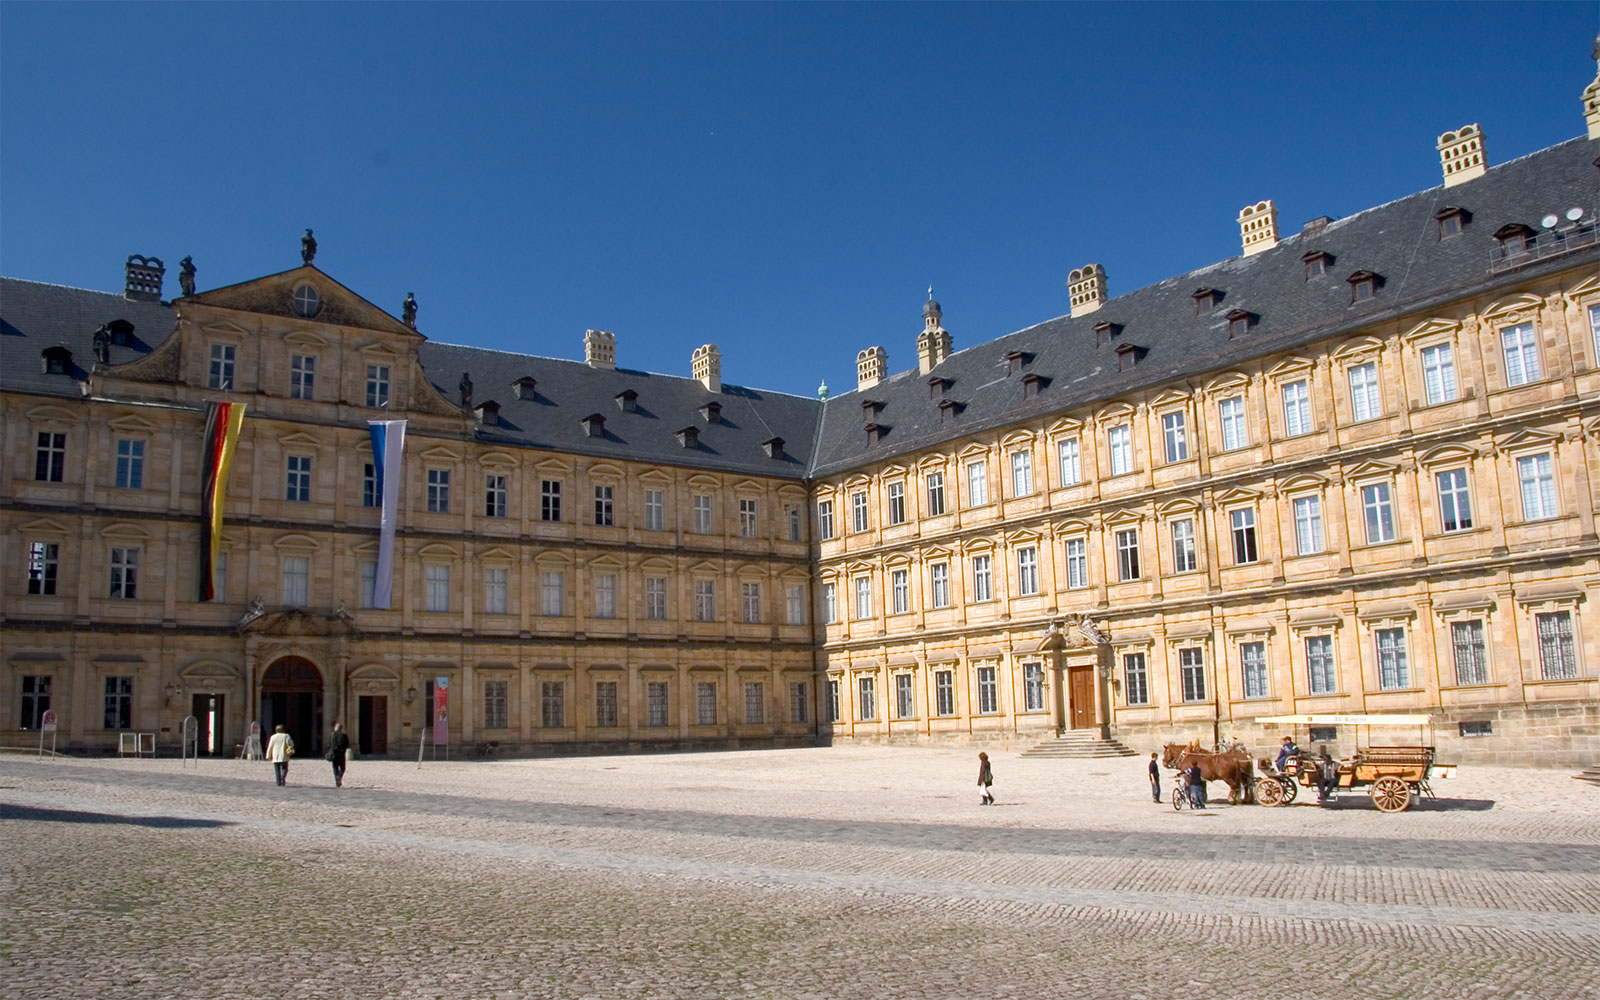 The New Residence, on Bamberg's cathedral square.